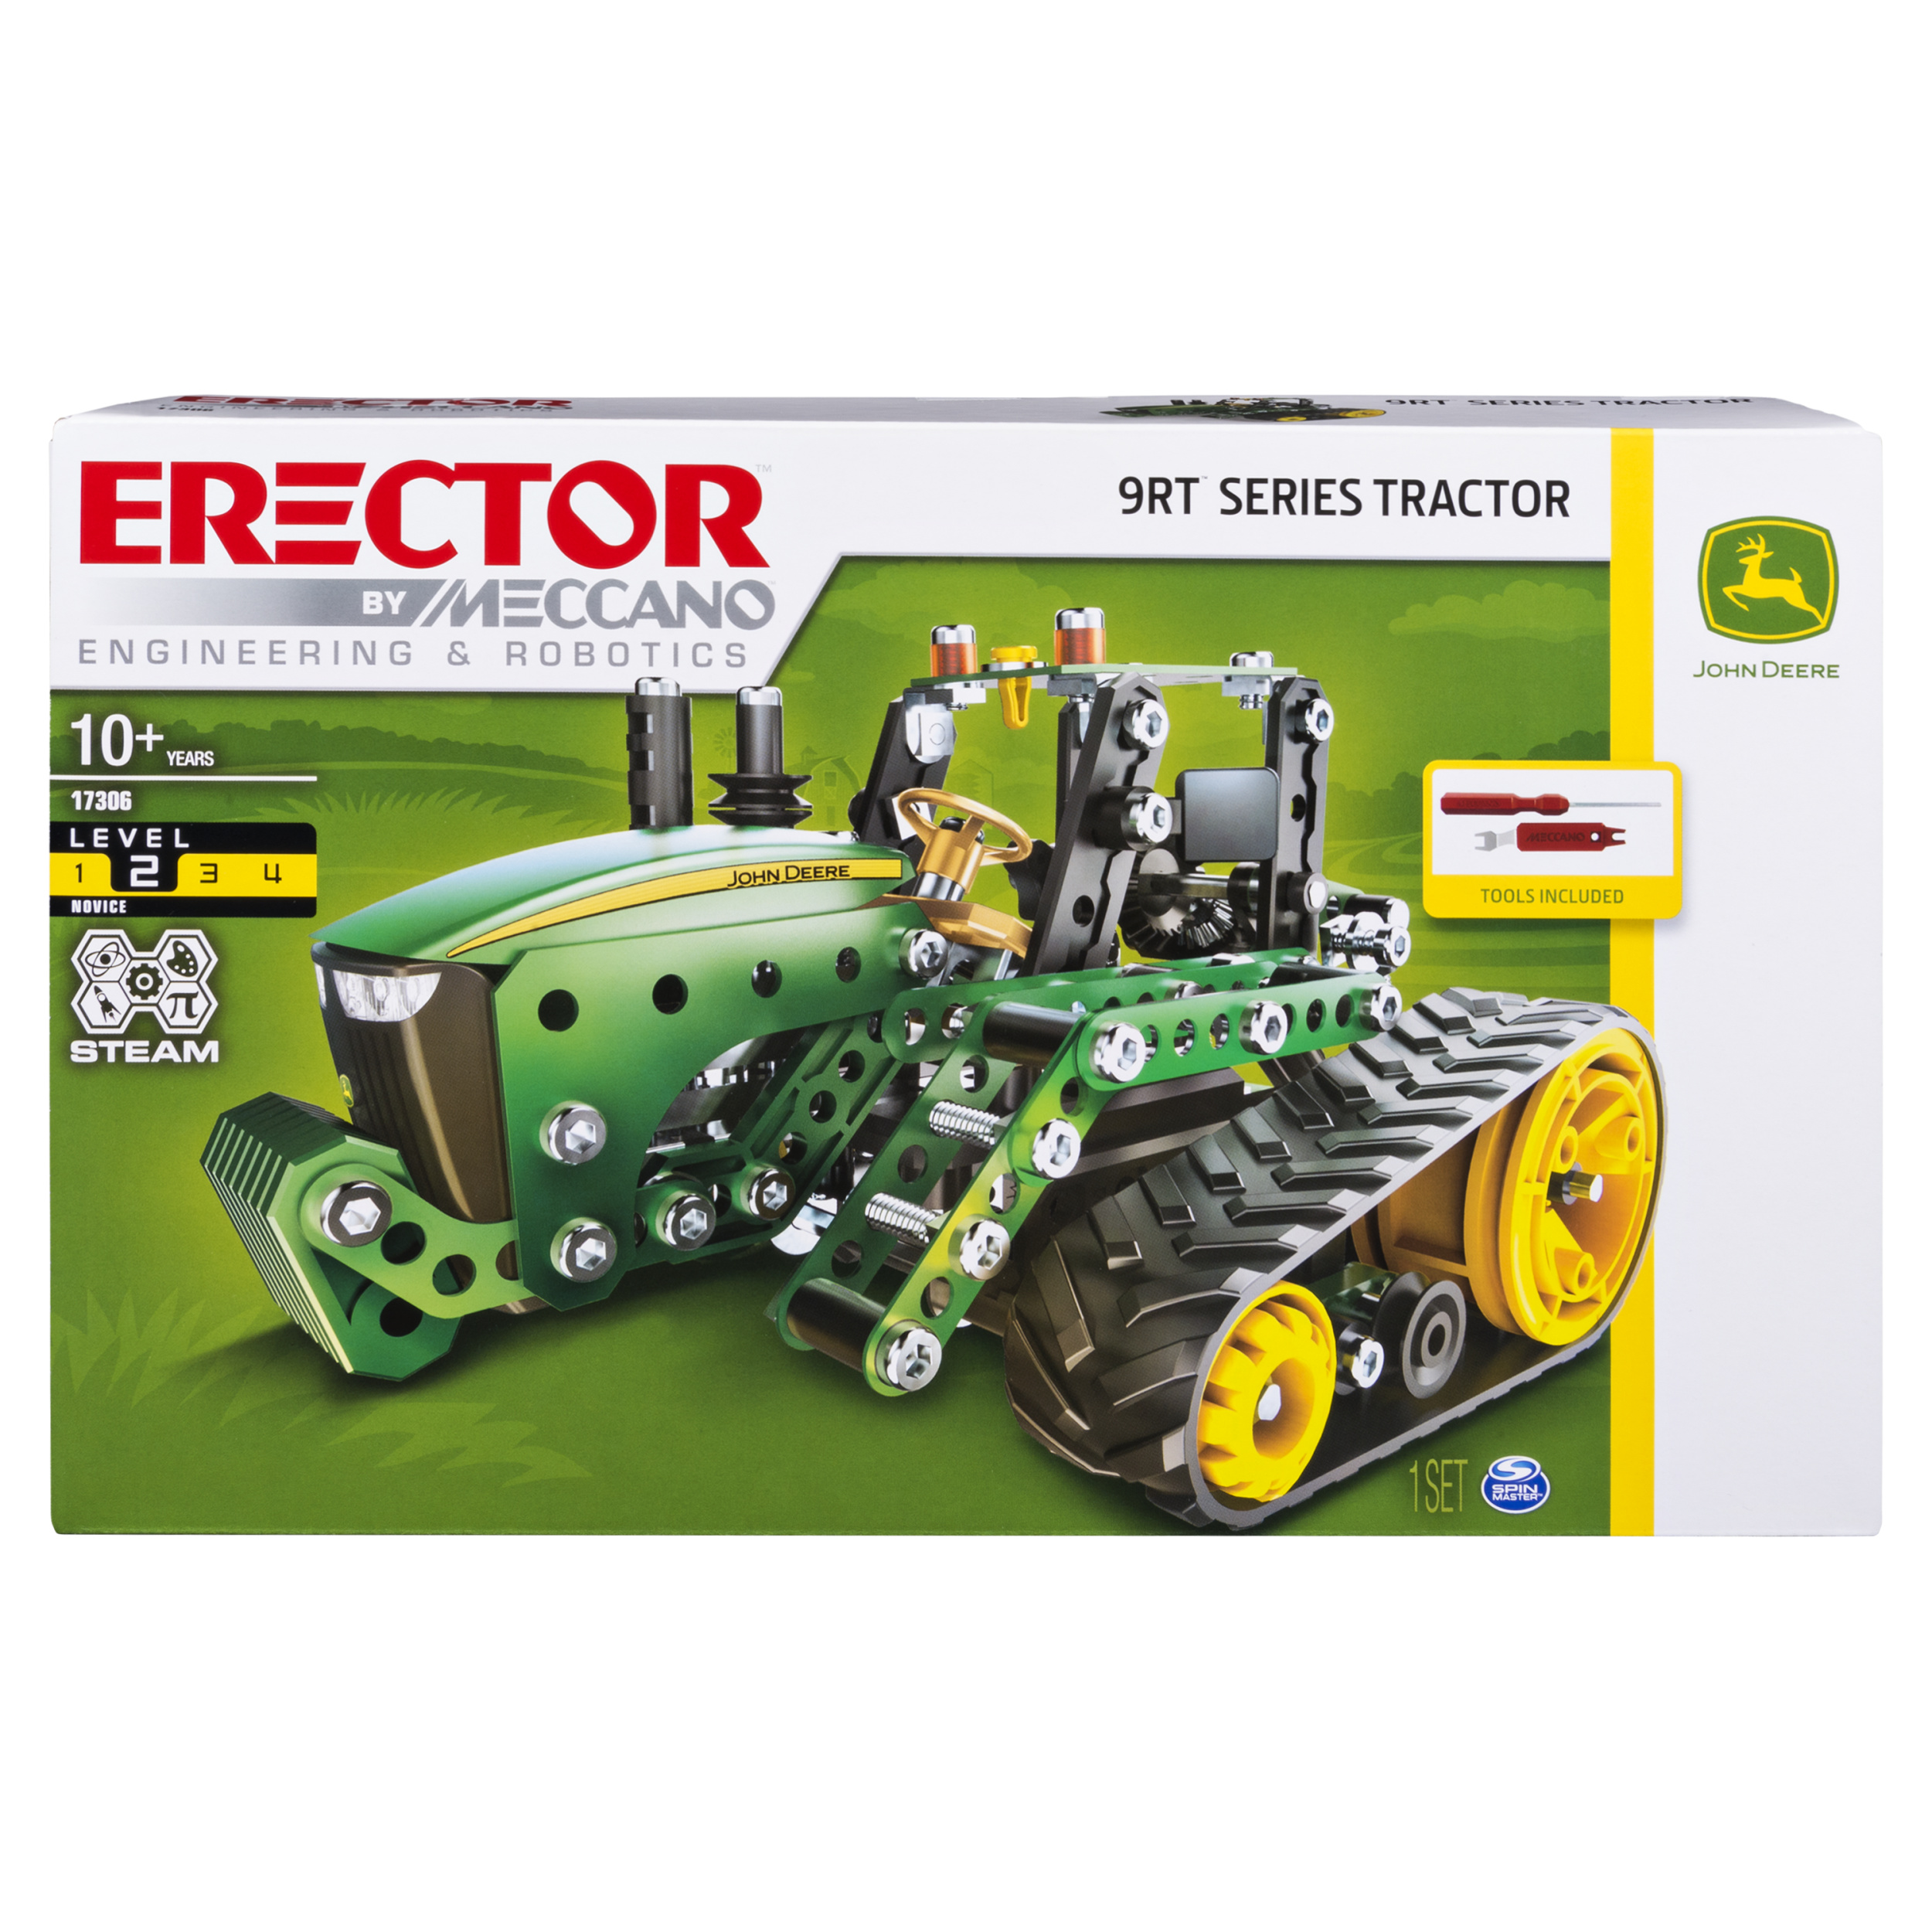 Erector by Meccano John Deere 9RT Tractor Model Building Kit, 278 Parts, for Ages 10 and Up